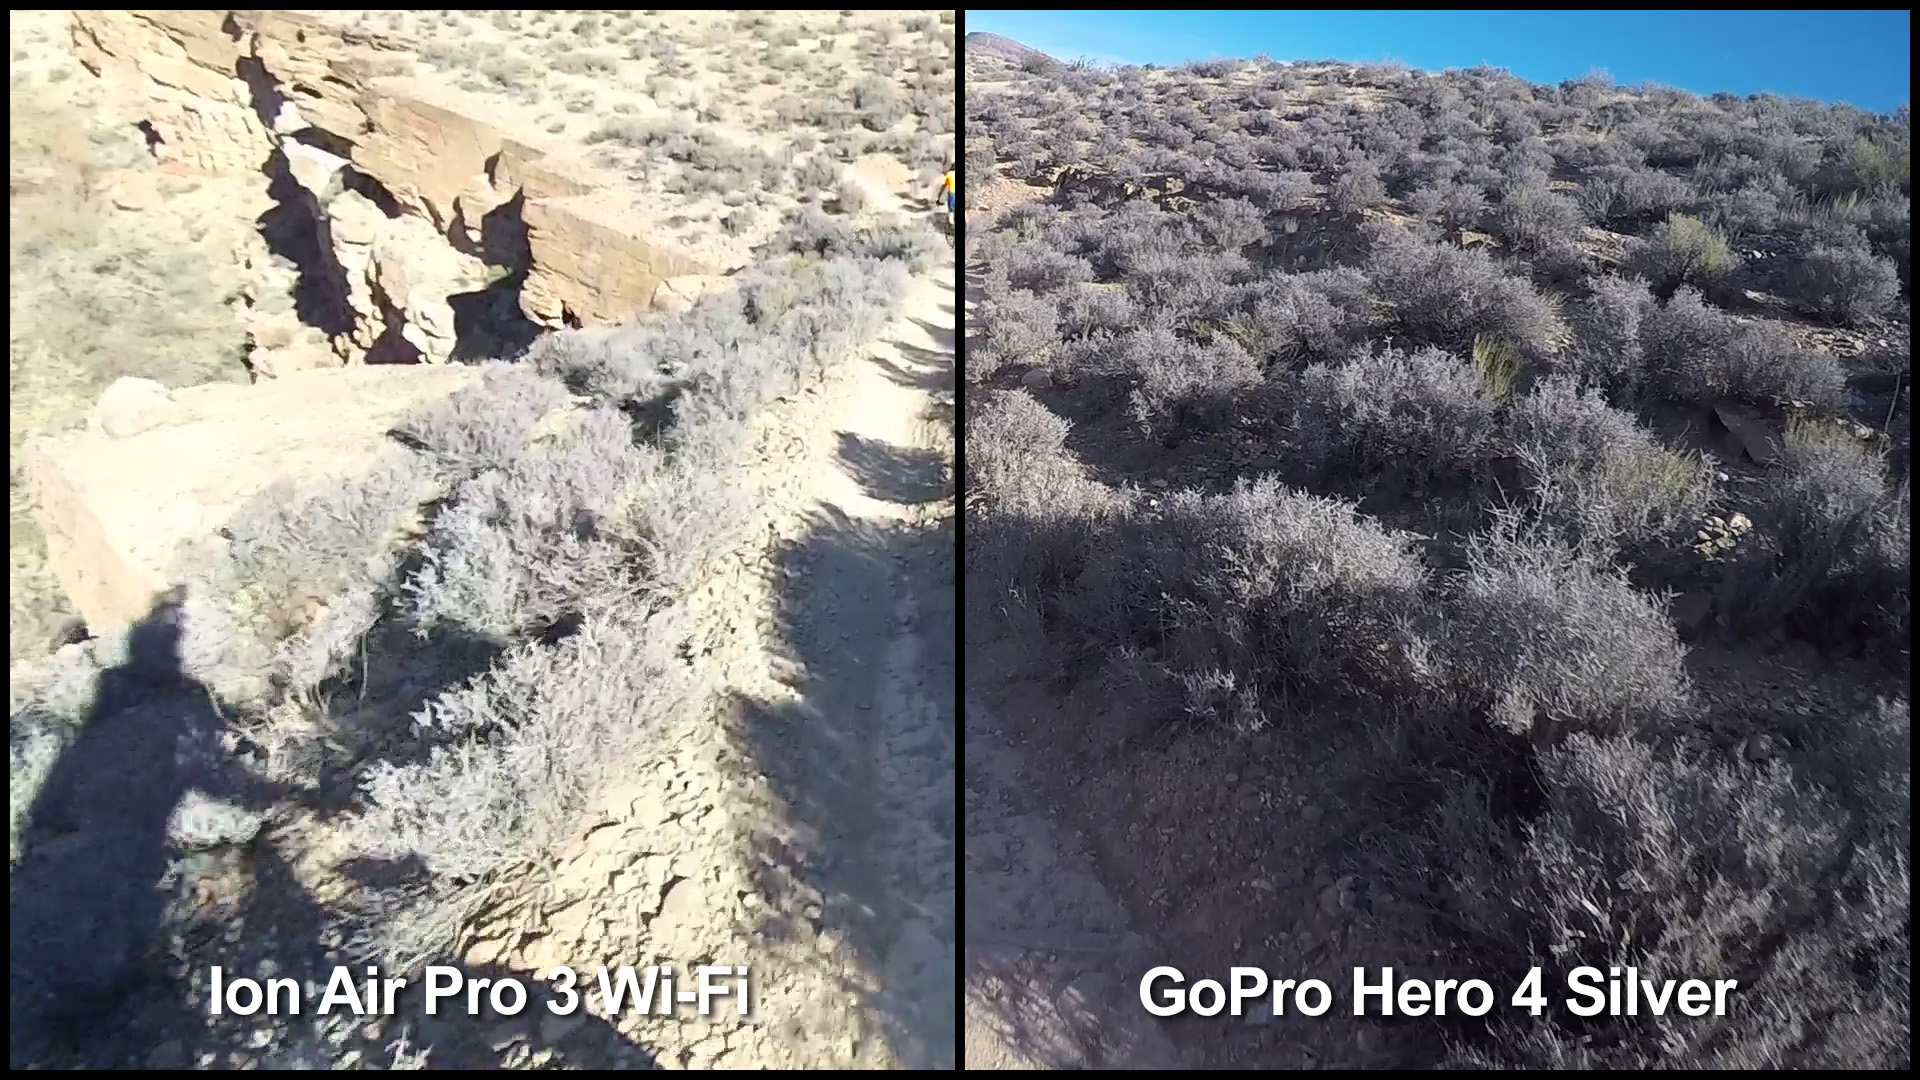 A split image made from two frame grabs taken from the same point in our POV shootout trail video. Notice how refined the detail is in the GoPro Protune footage (right).